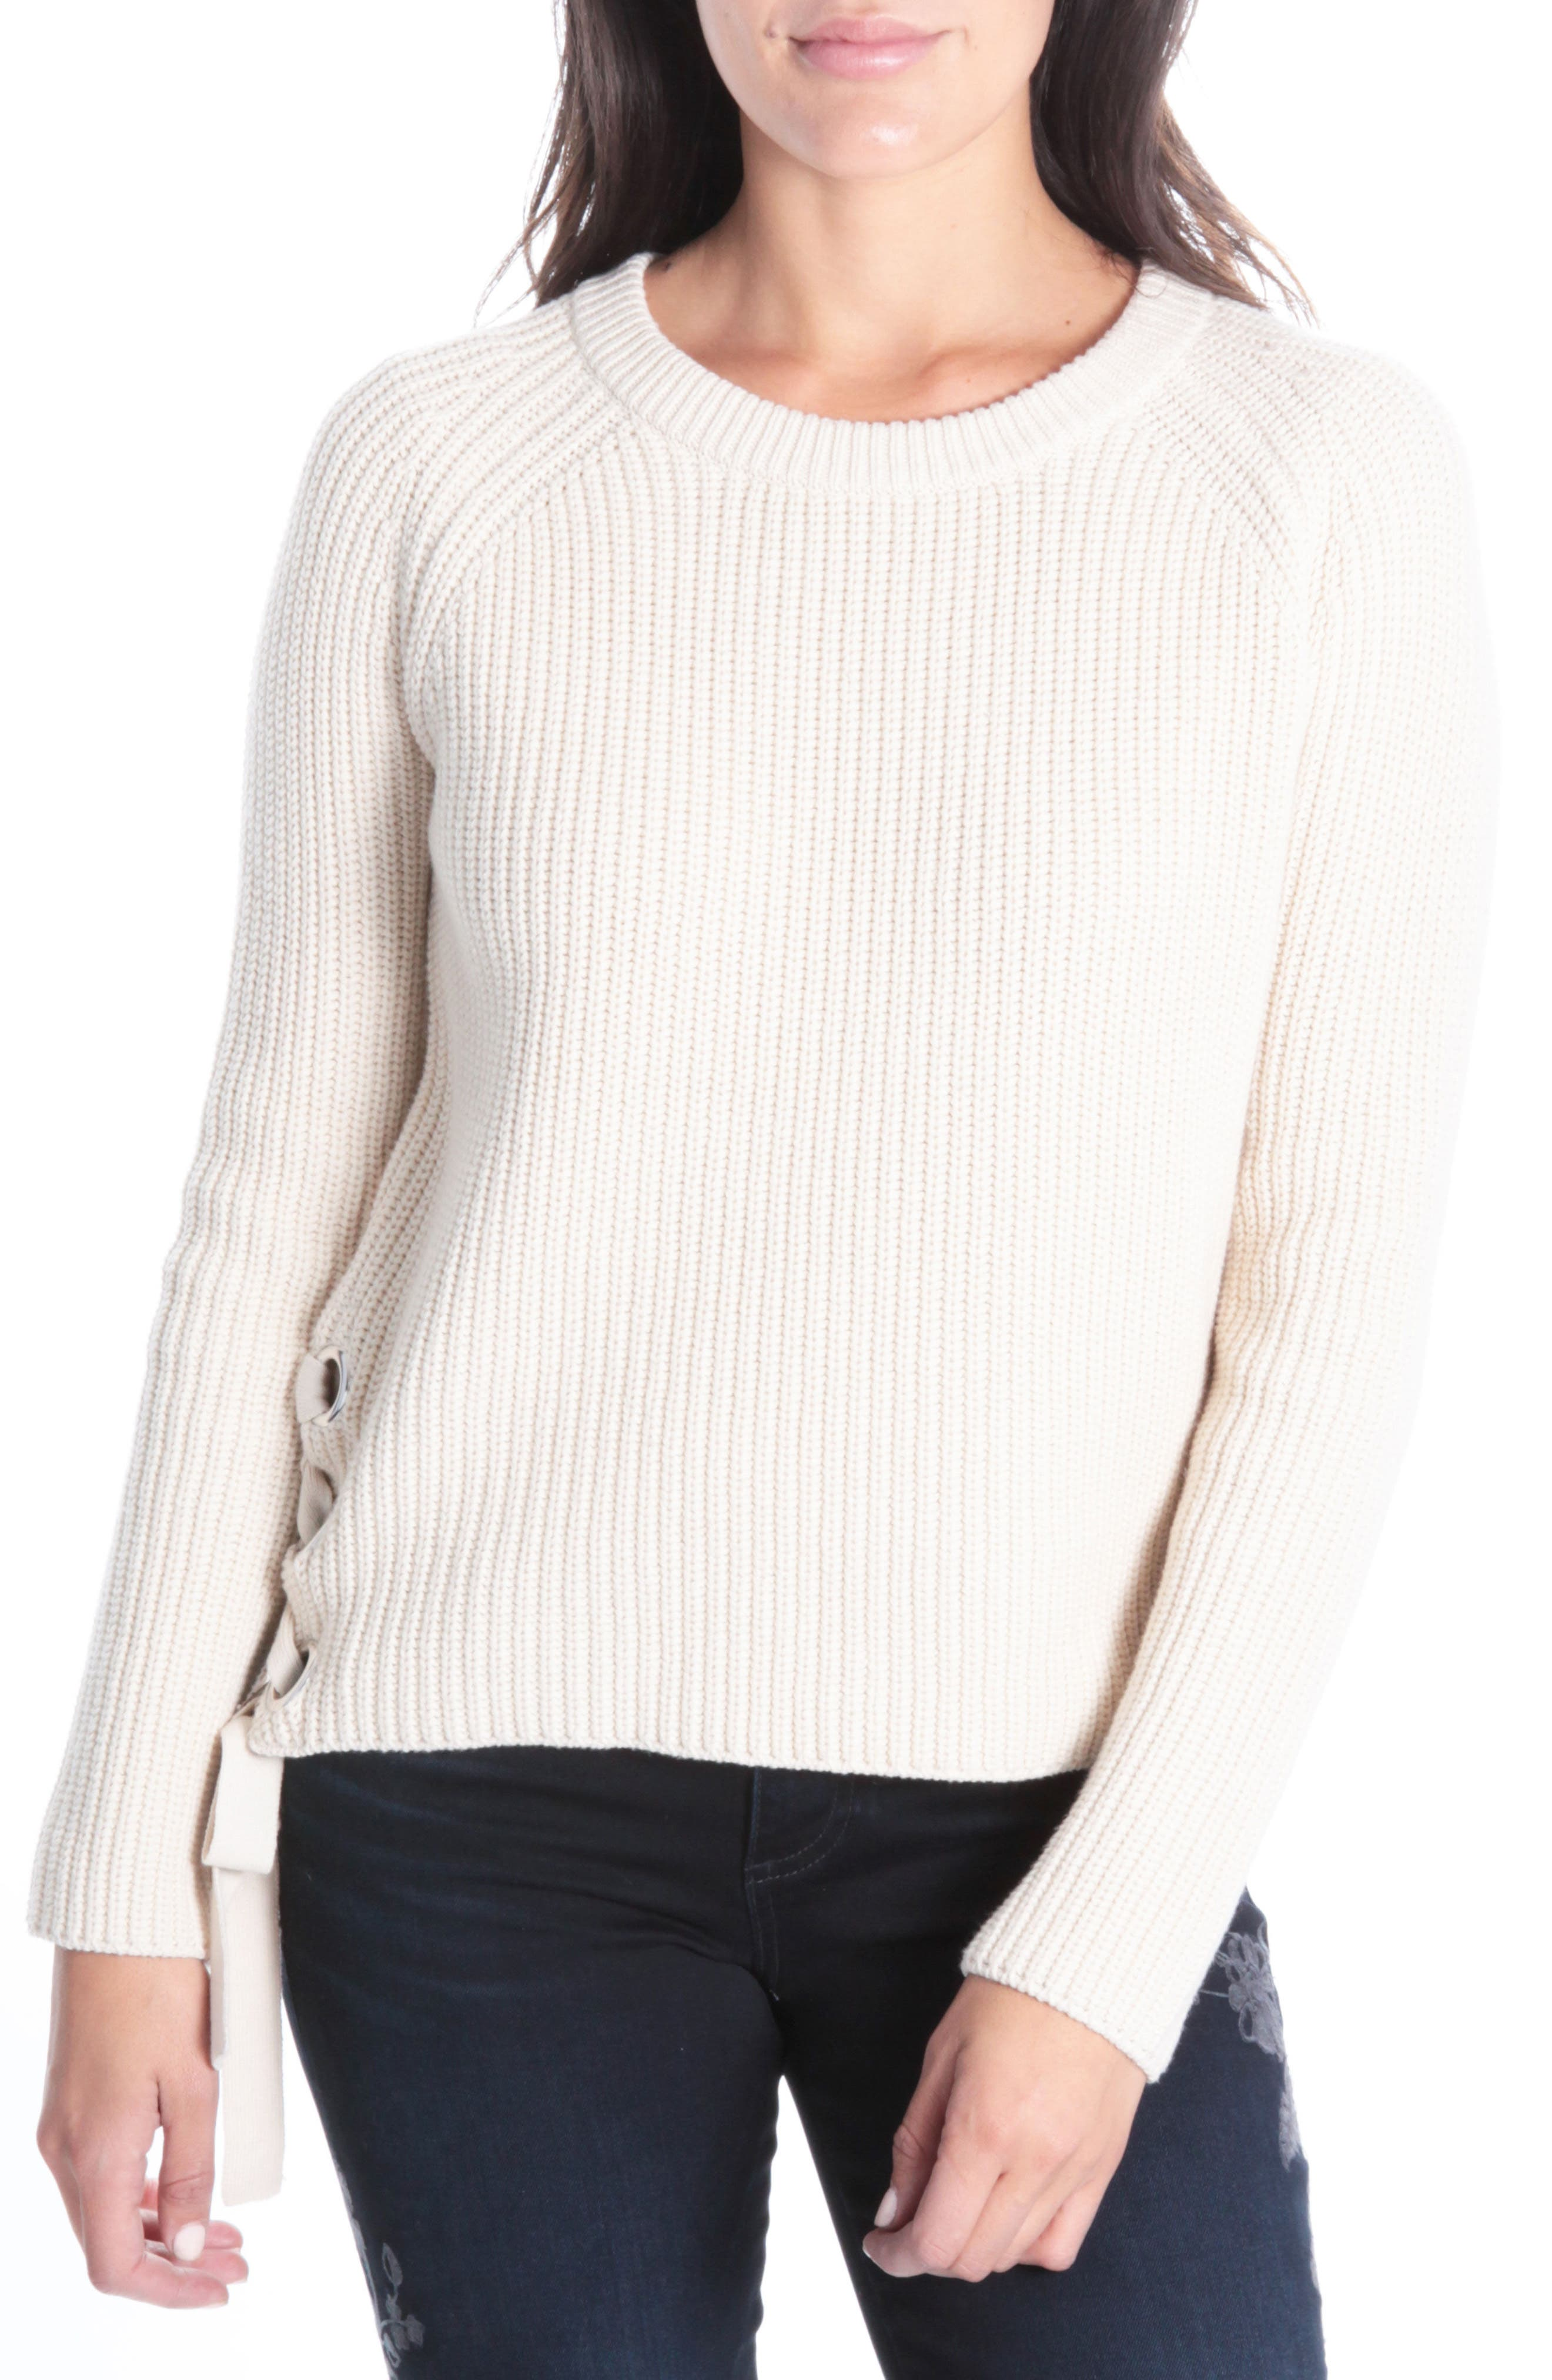 Main Image - KUT from the Kloth Adire Sweater